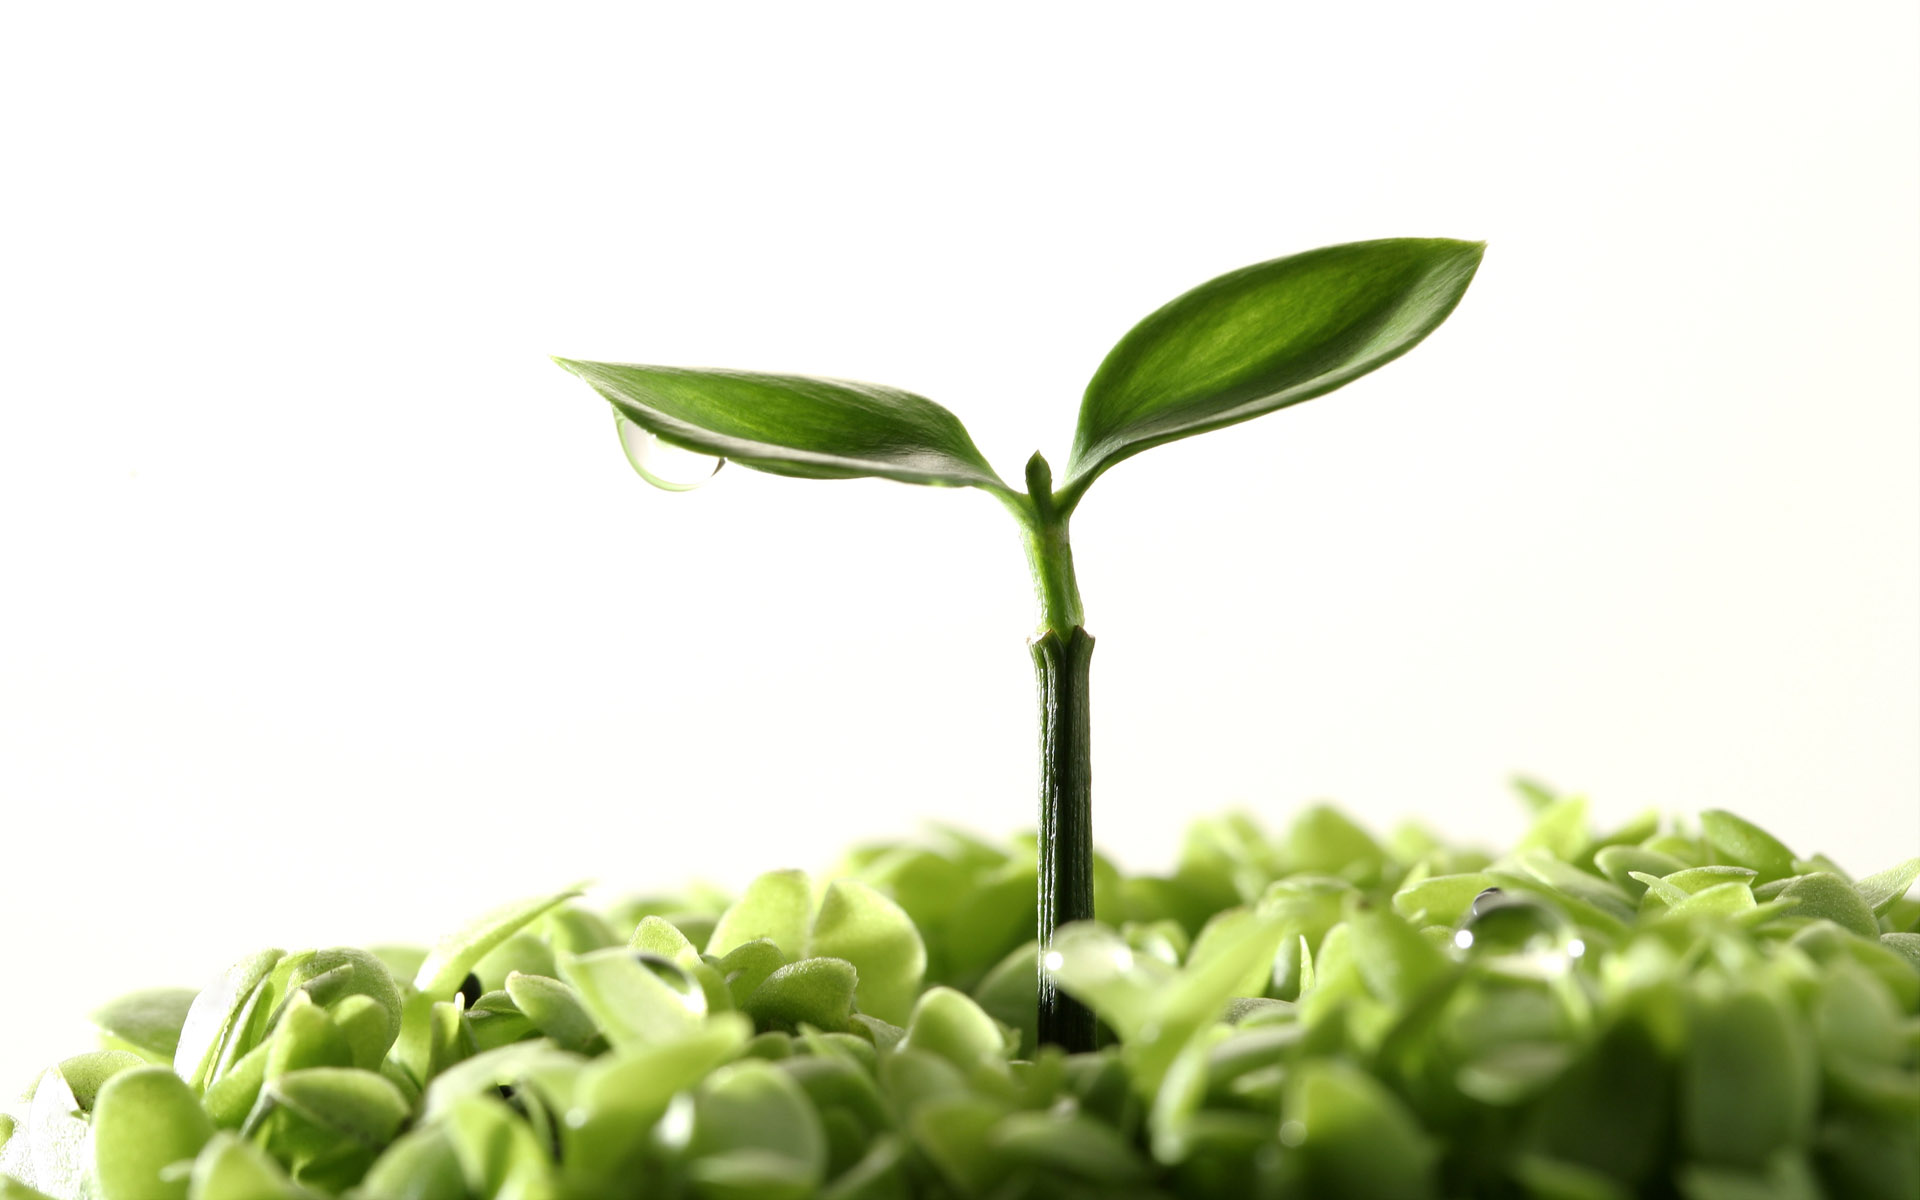 Sprouts leaves 8021